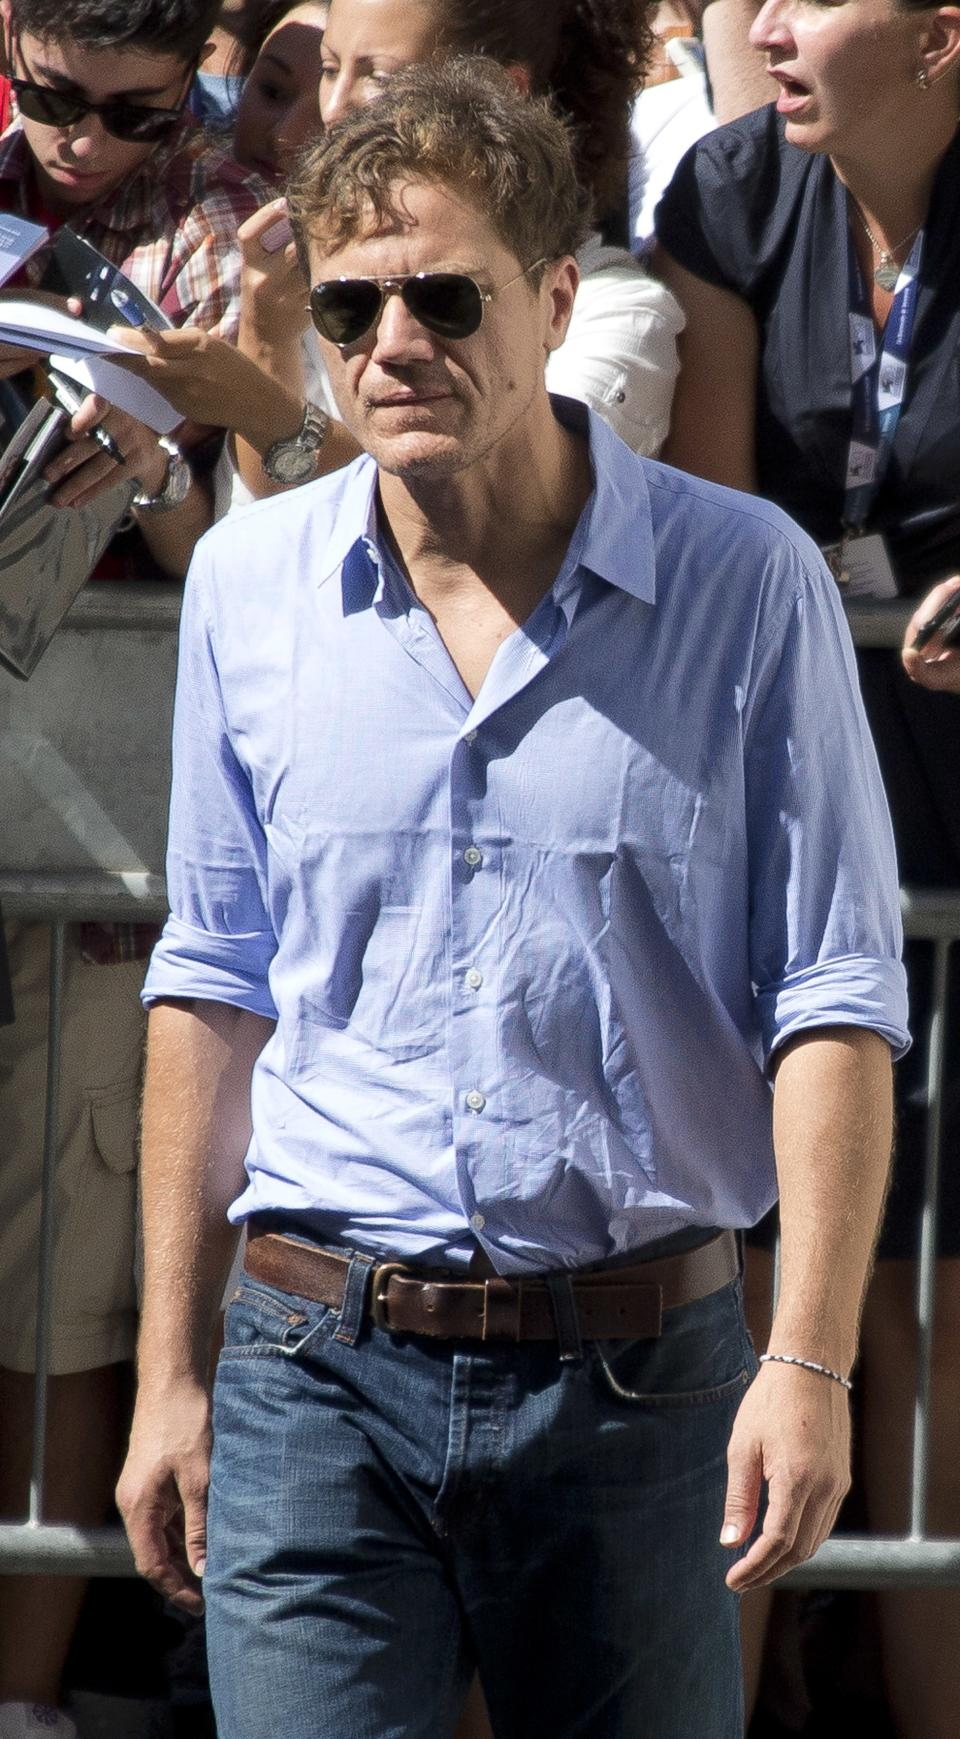 Actor Michael Shannon arrives for the press conference of the film 'The Iceman' during the 69th edition of the Venice Film Festival in Venice, Italy, Thursday, Aug. 30, 2012. (AP Photo/Joel Ryan)